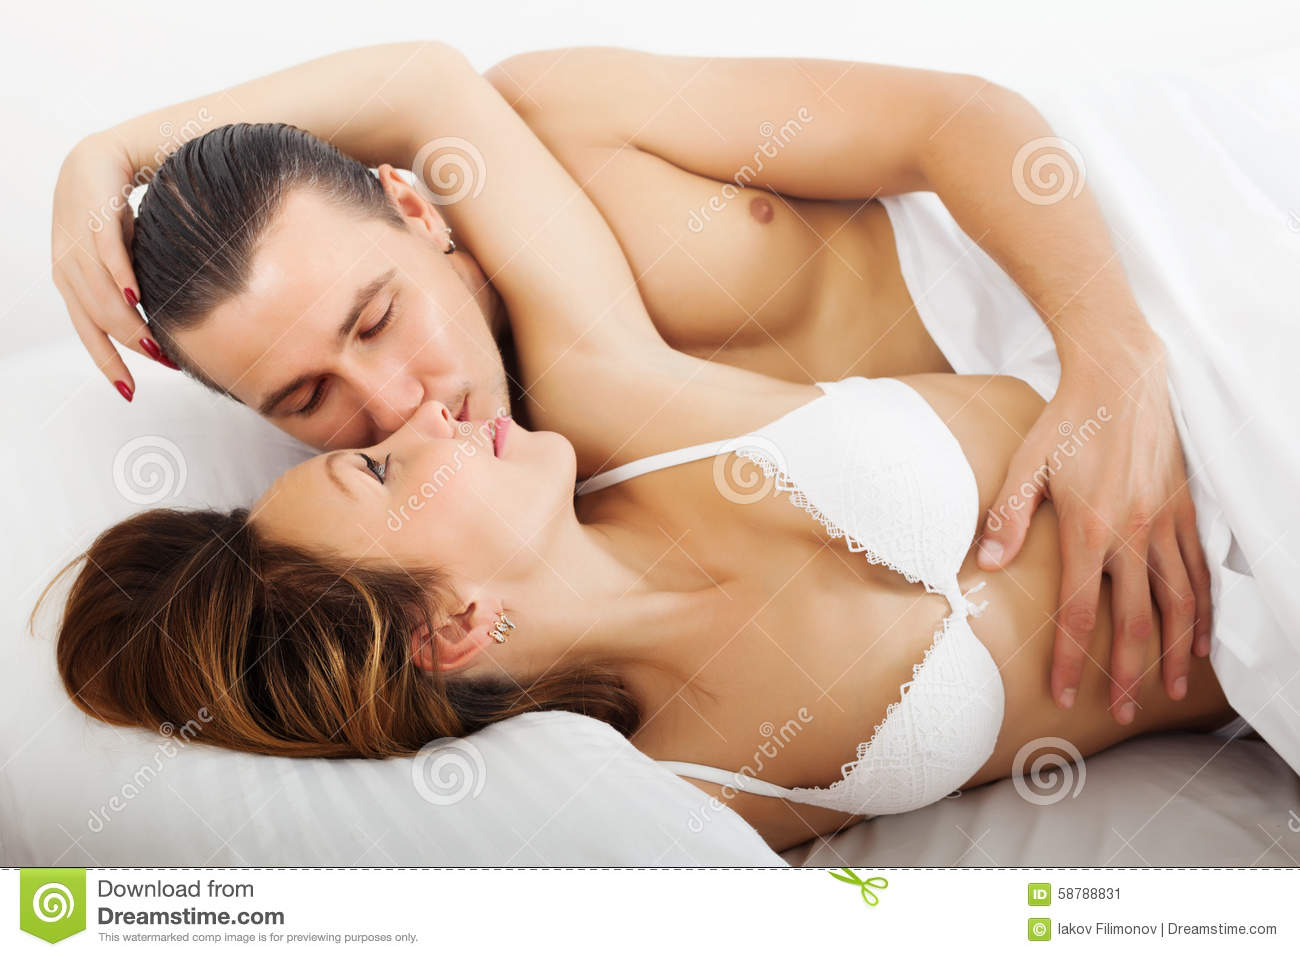 Men and women in bed together